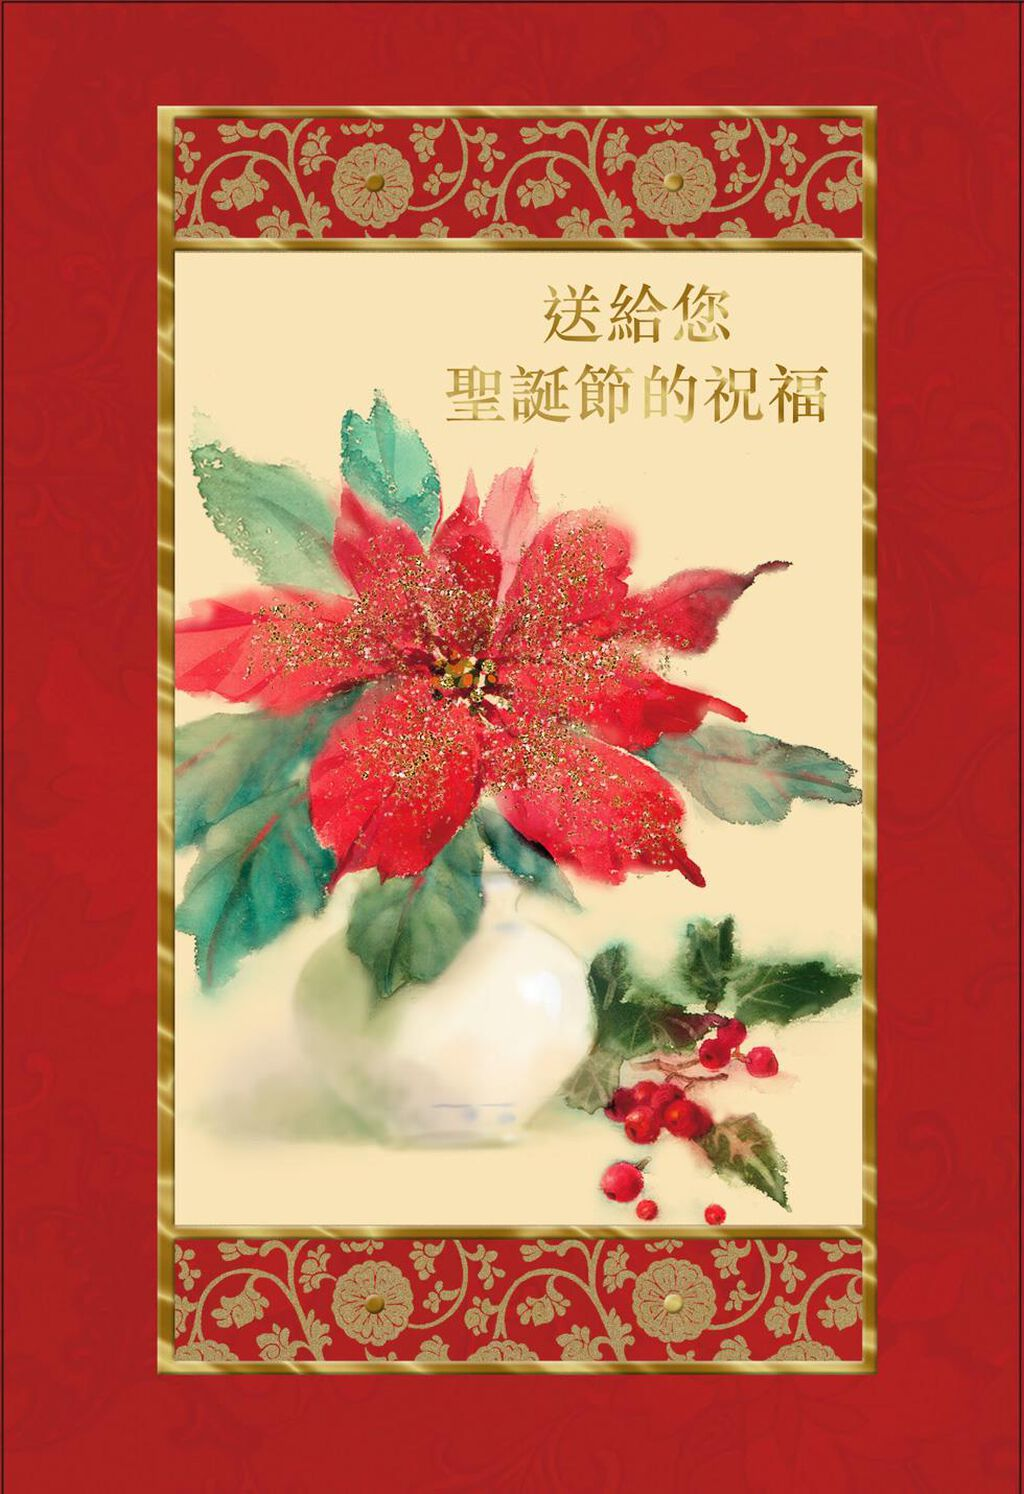 Holiday Poinsettia Chinese Language Christmas Card Greeting Cards